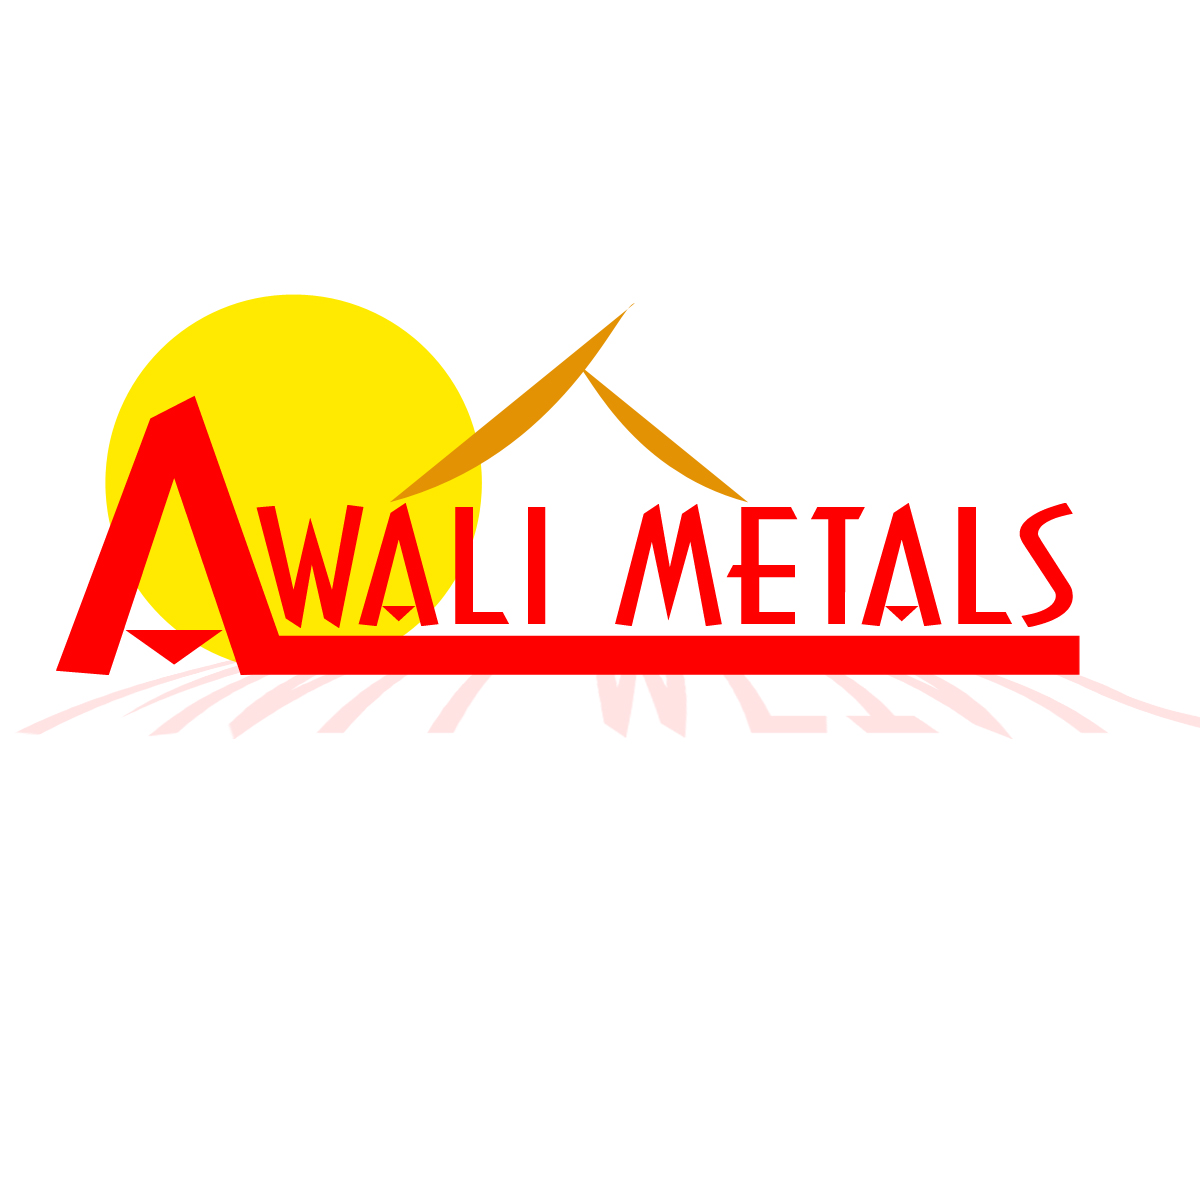 Logo Design by Bronzebeard Kristoffer - Entry No. 2 in the Logo Design Contest Inspiring Logo Design for Al Wali Metals.